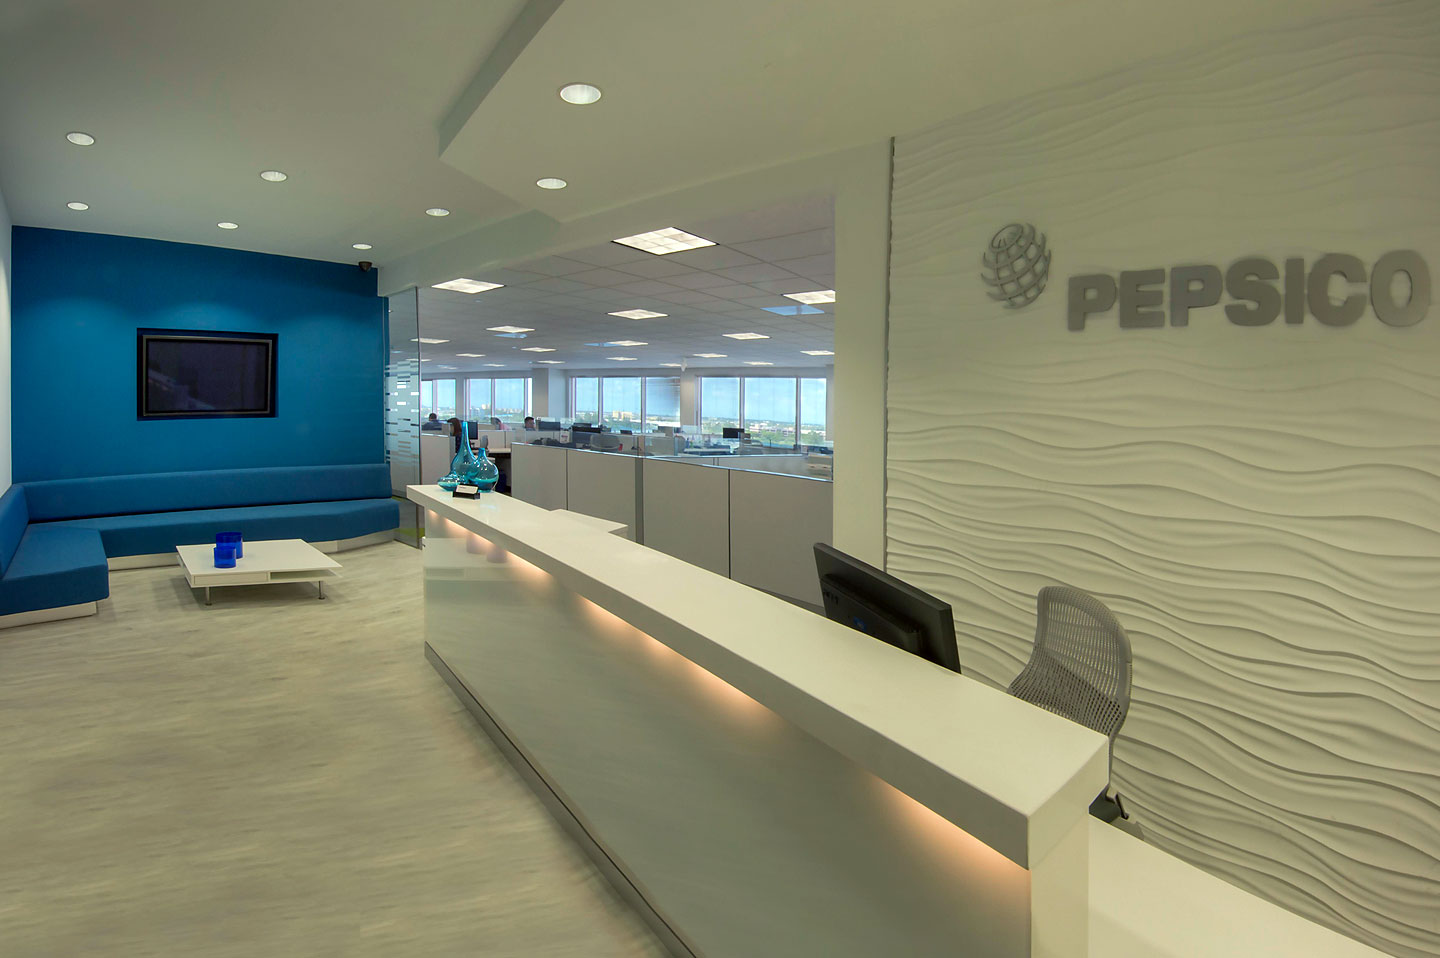 photo of the pepsi co reception desk